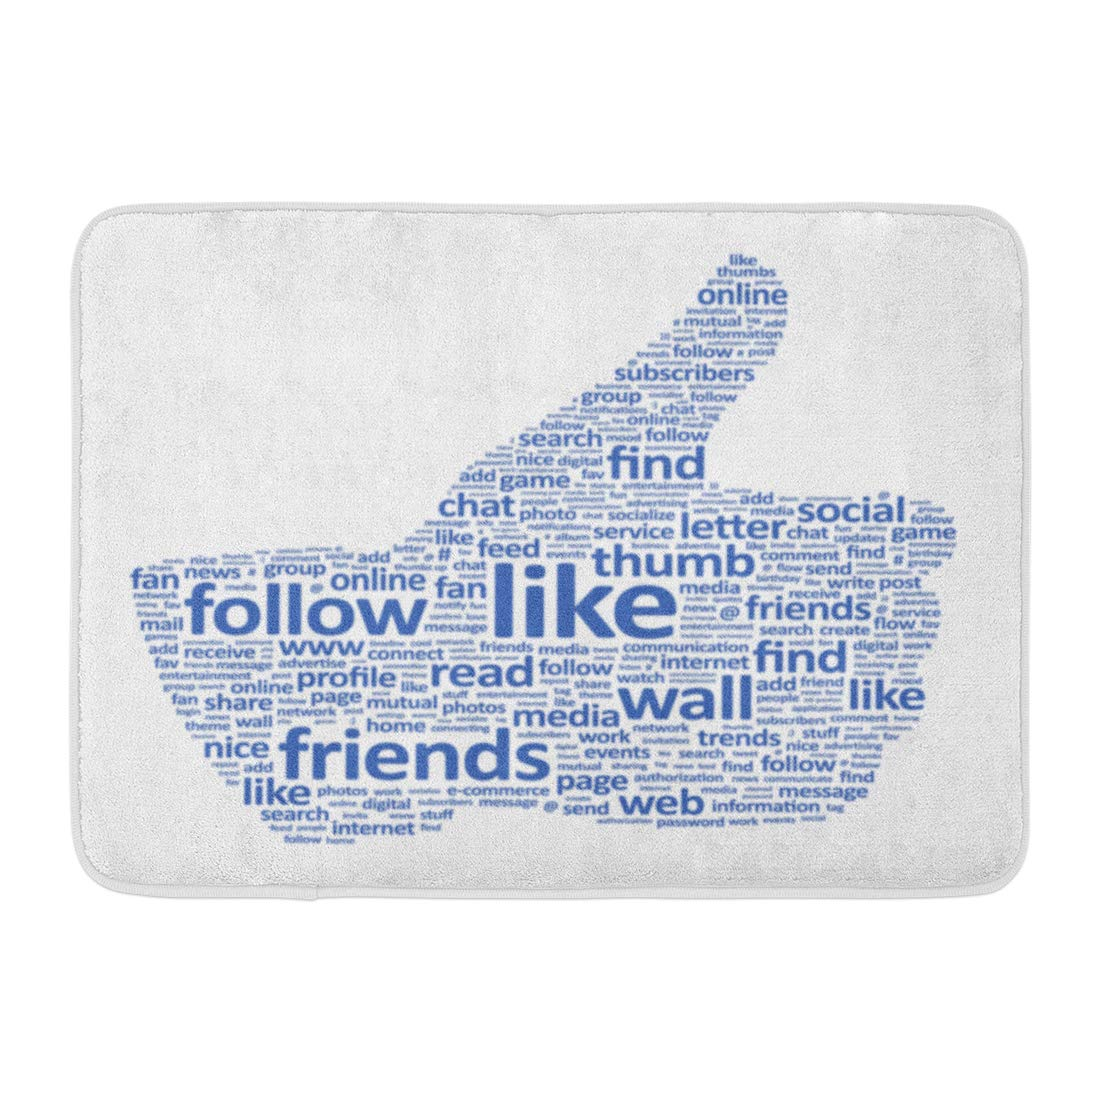 Emvency Doormats Bath Rugs Outdoor/Indoor Door Mat Network of The Thumbs Up Symbol Which is Composed Text Keywords on Social Media Themes White Like ...